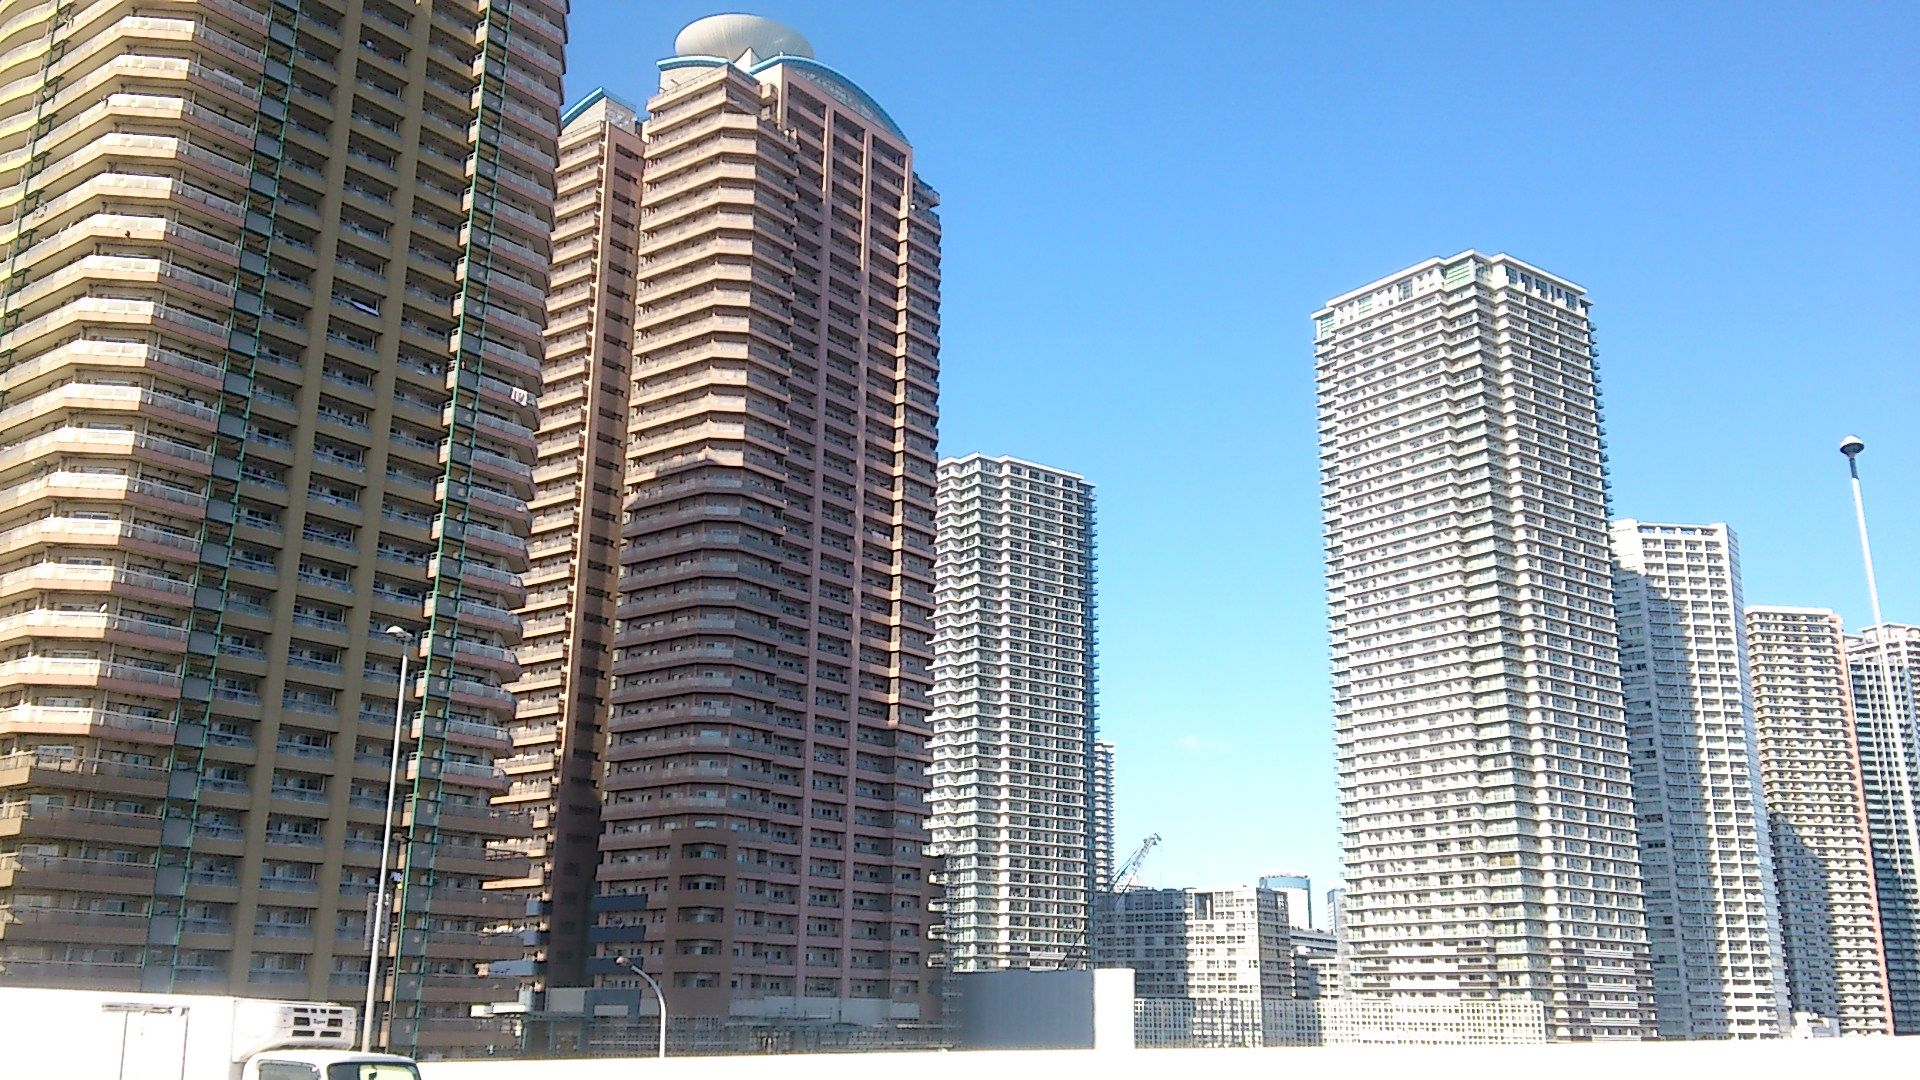 Tall repetitive buildings in Tokyo. I like the pattern of all the windows/floors.